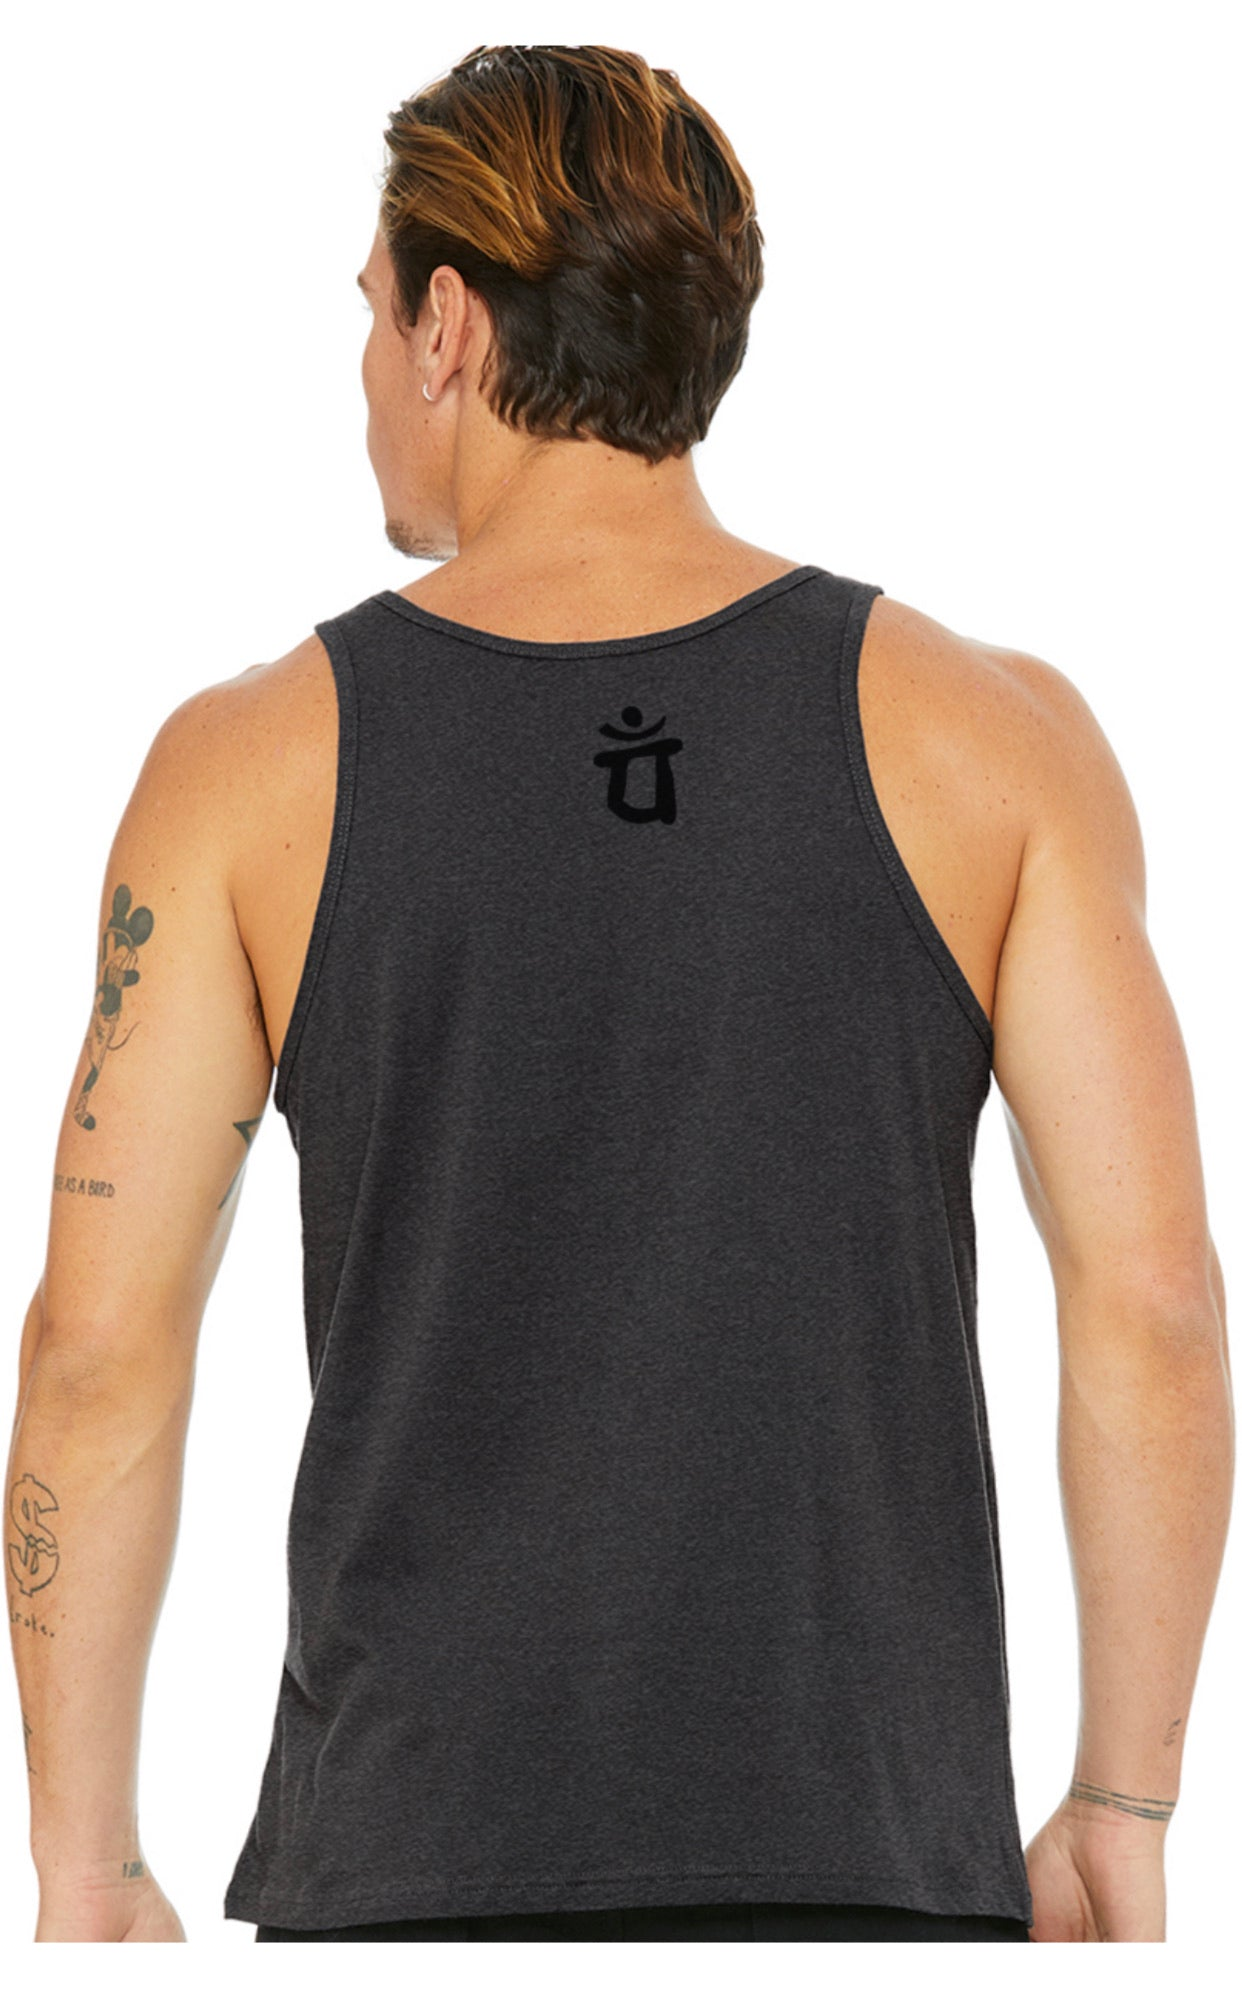 State of Gratitude Heather Black Sleeveless Tank Mens Womens Shirt Top